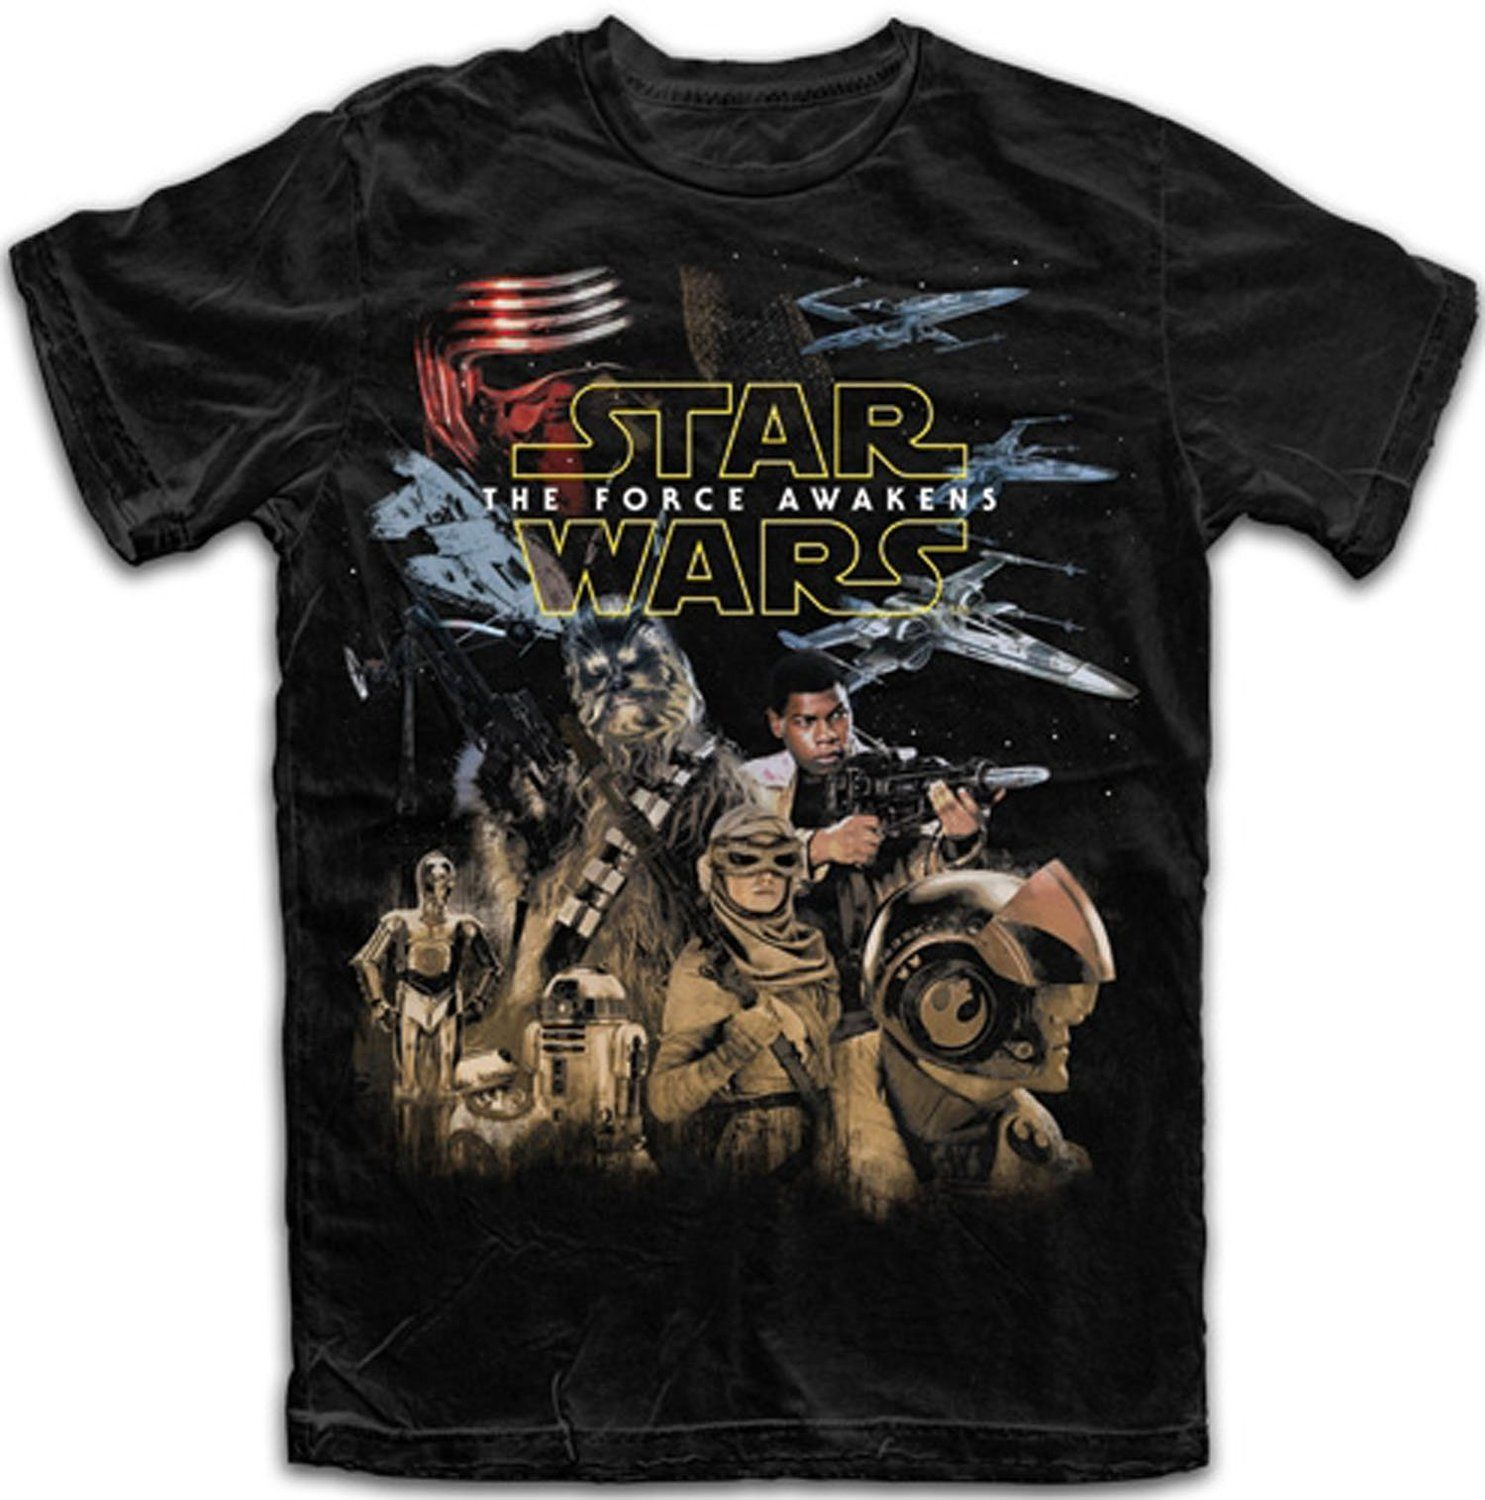 STAR WARS Droids  T-Shirt  camiseta cotton officially licensed